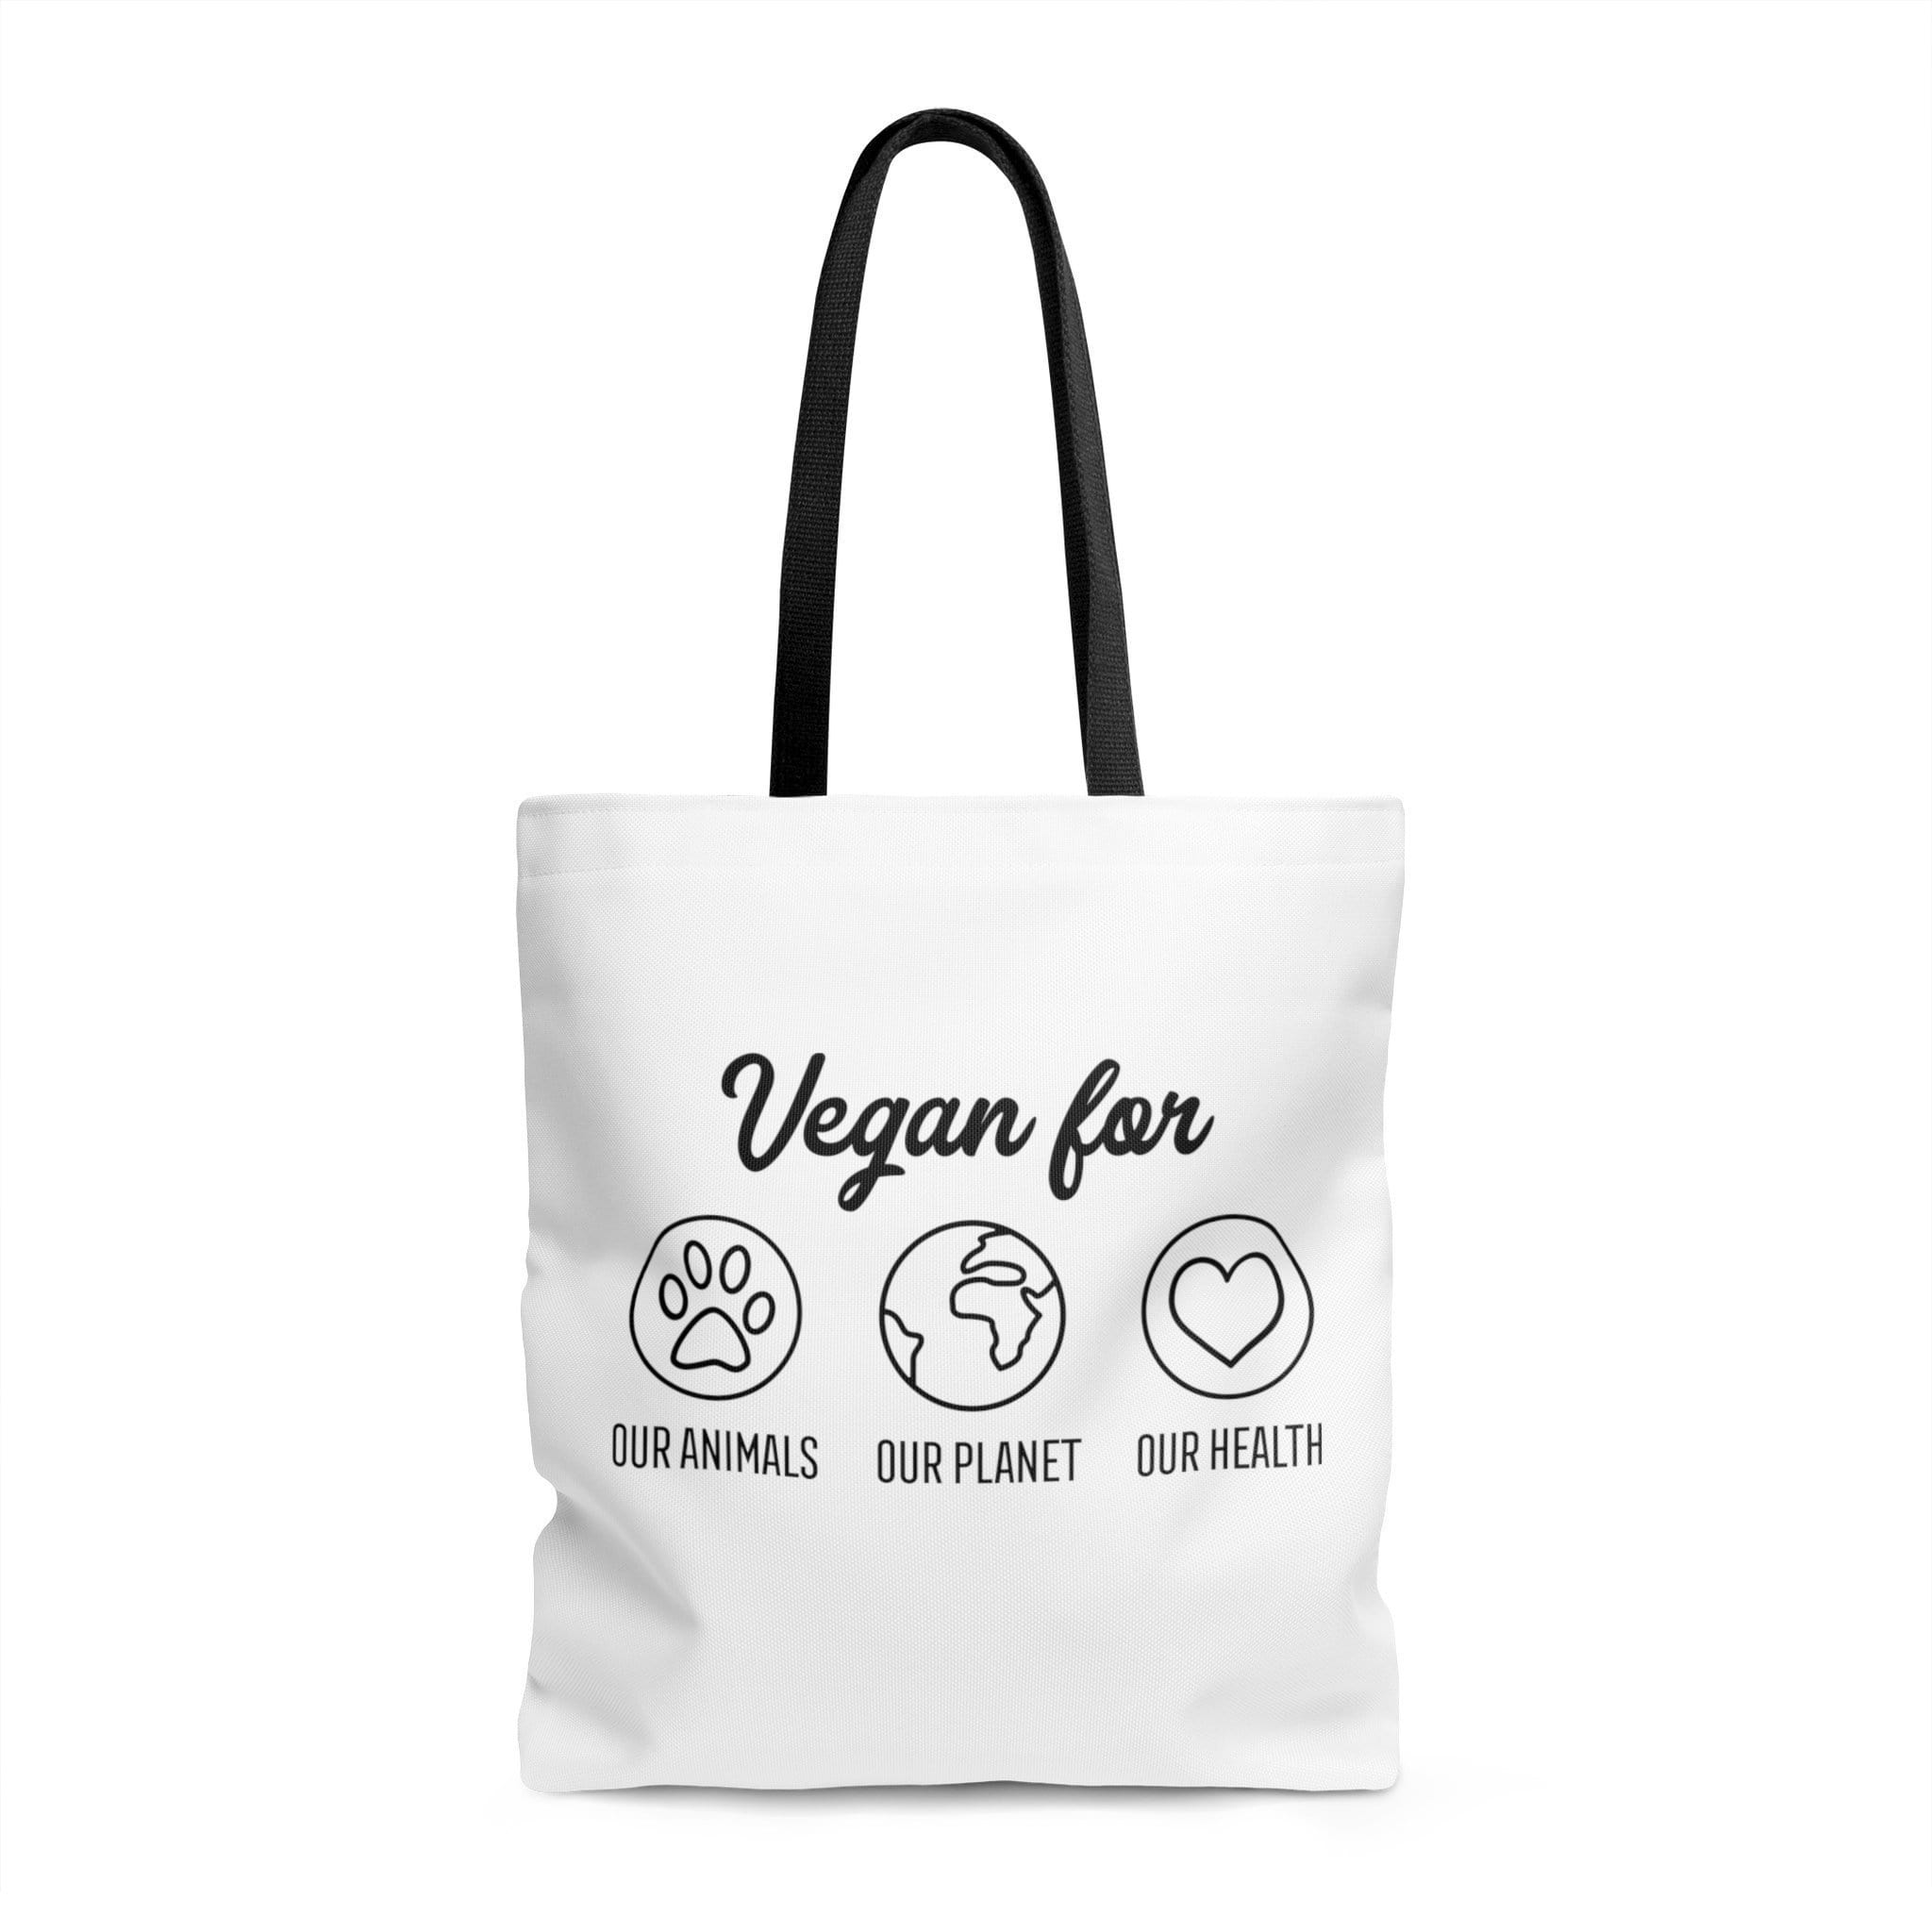 The Vegan Vibe Store Bags 16x16 in Vegan For | Vegan Tote Bag